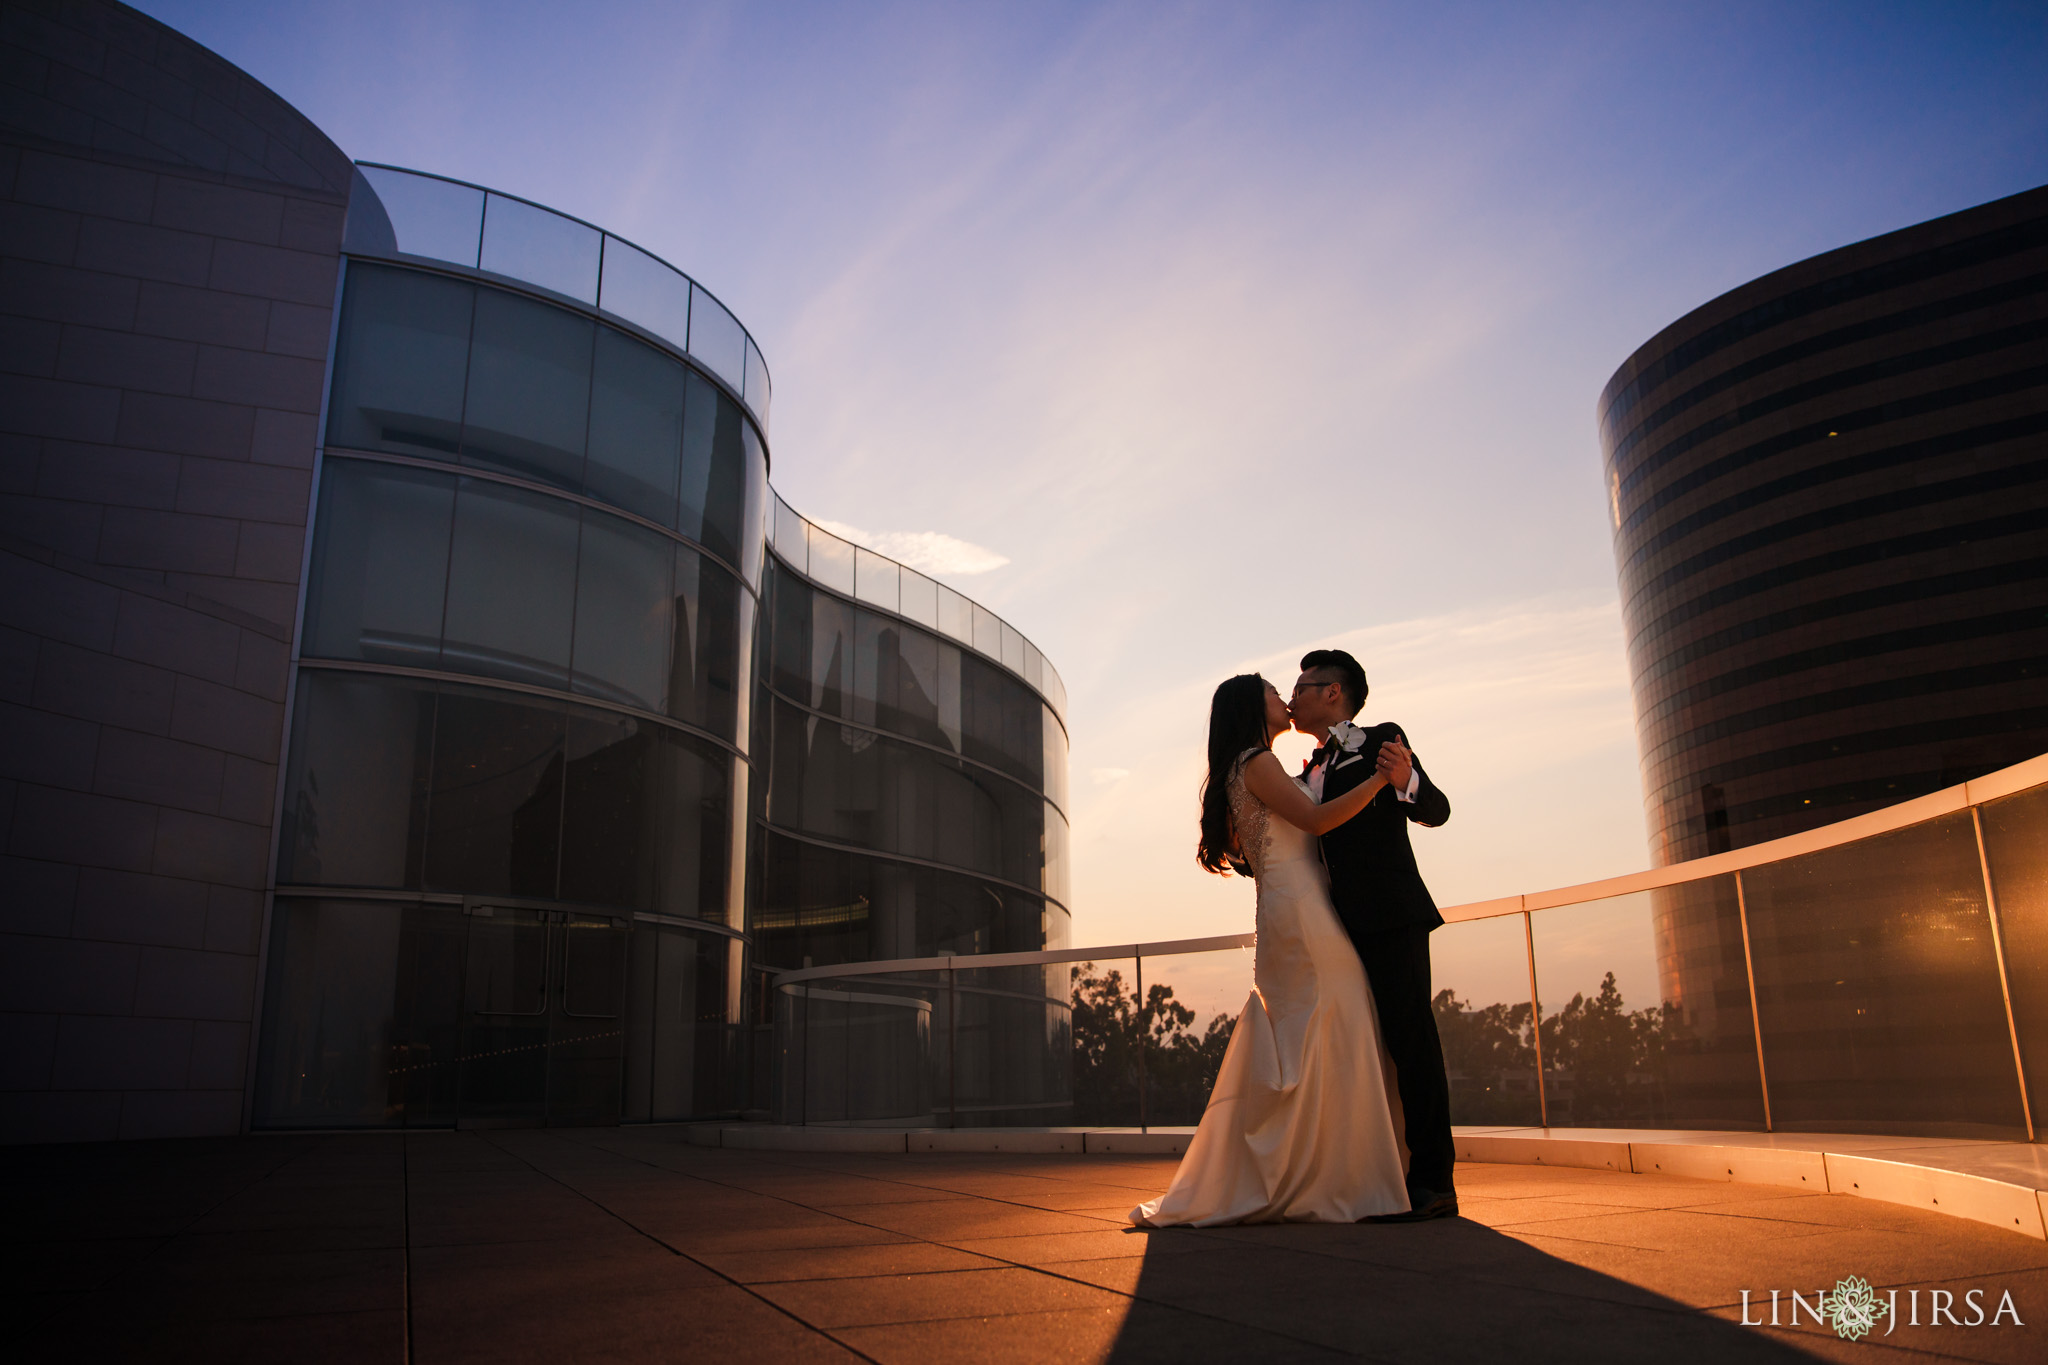 30 segerstrom center for the arts costa mesa wedding photography